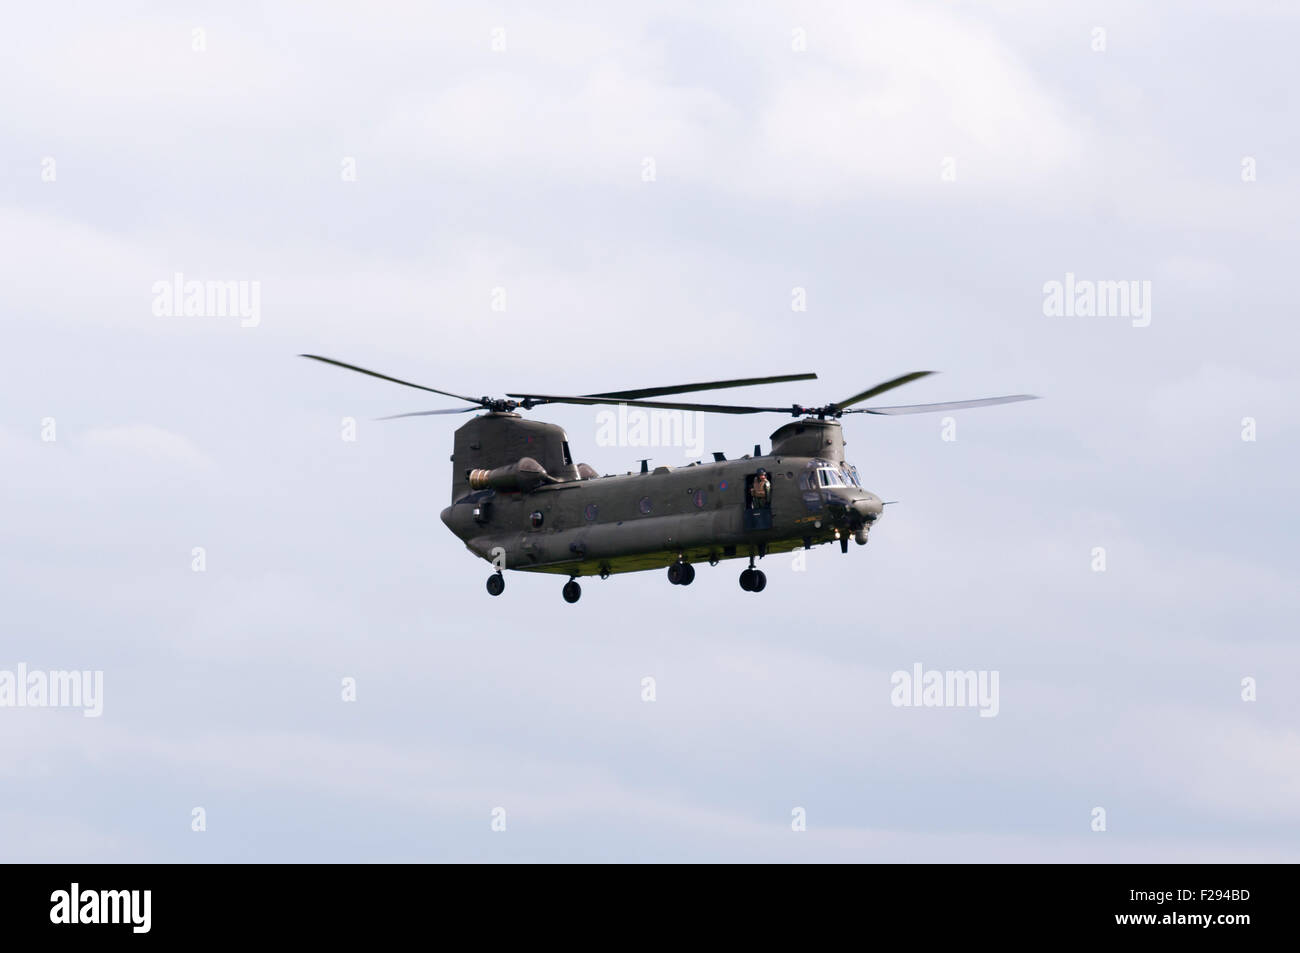 Side View Of A British Army Chinook Helicopter In Flight - Stock Image